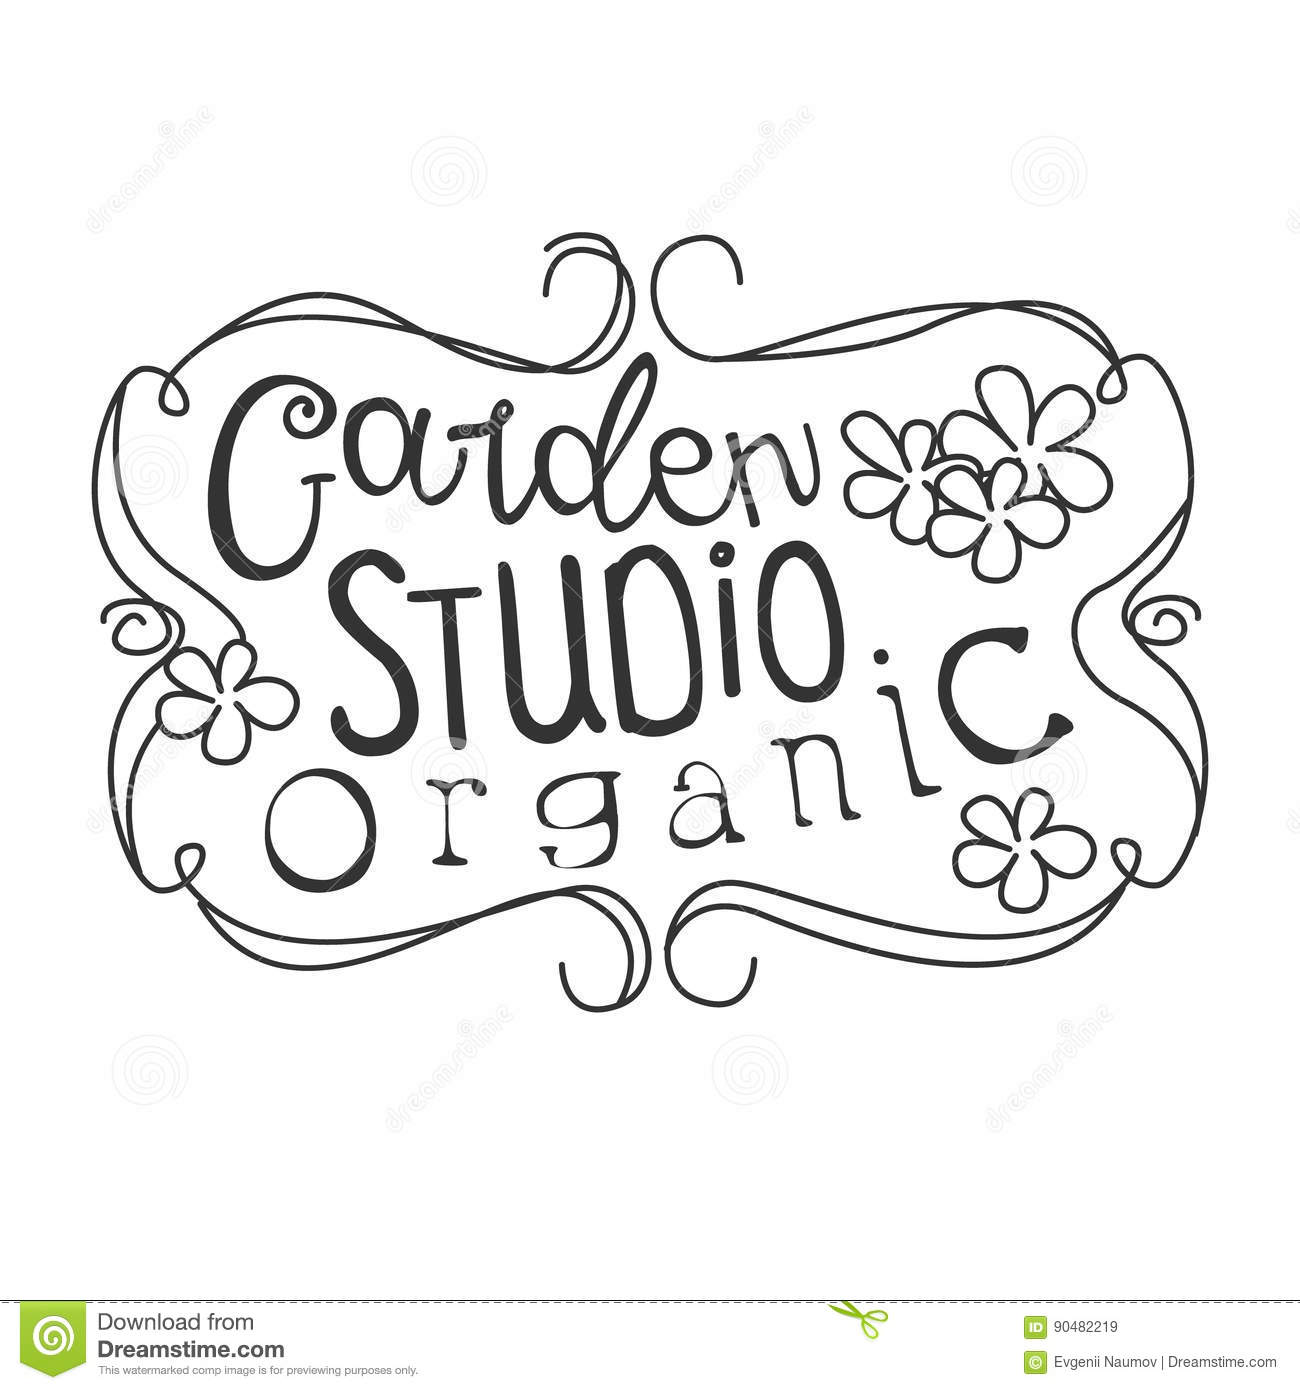 Garden Organic Studio Black And White Promo Sign Design Template With Calligraphic Text With Vintage Frame